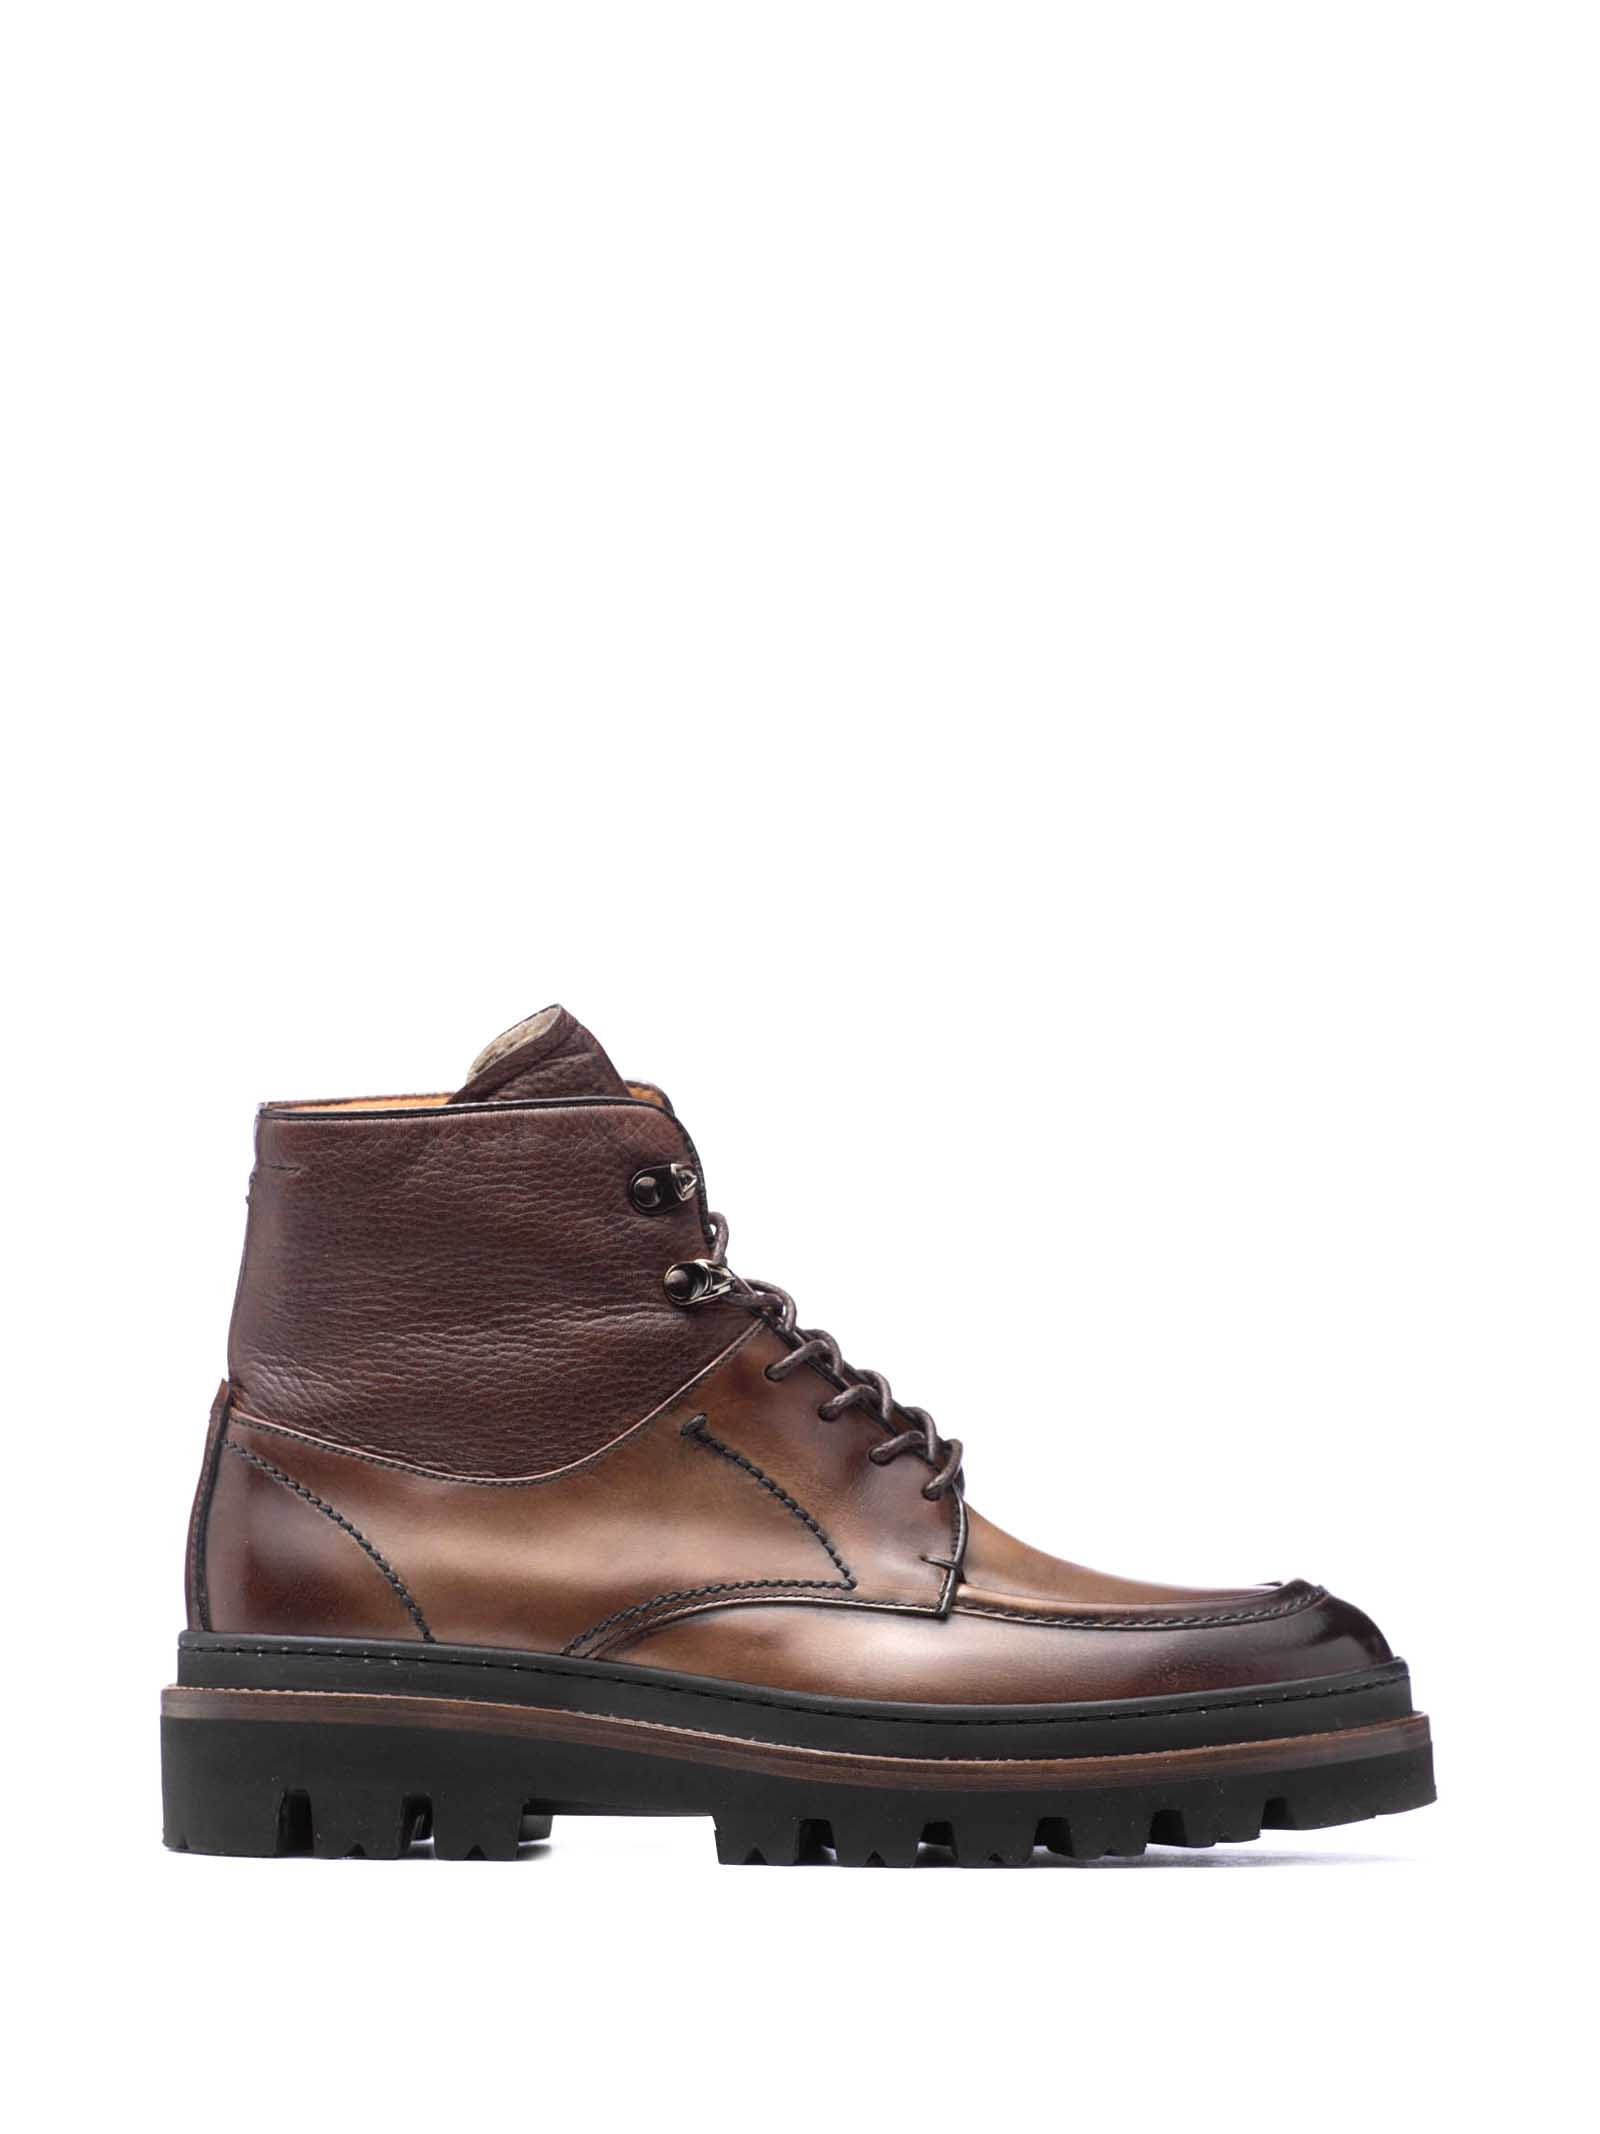 Fabi Fabi Trekking Leather Boots